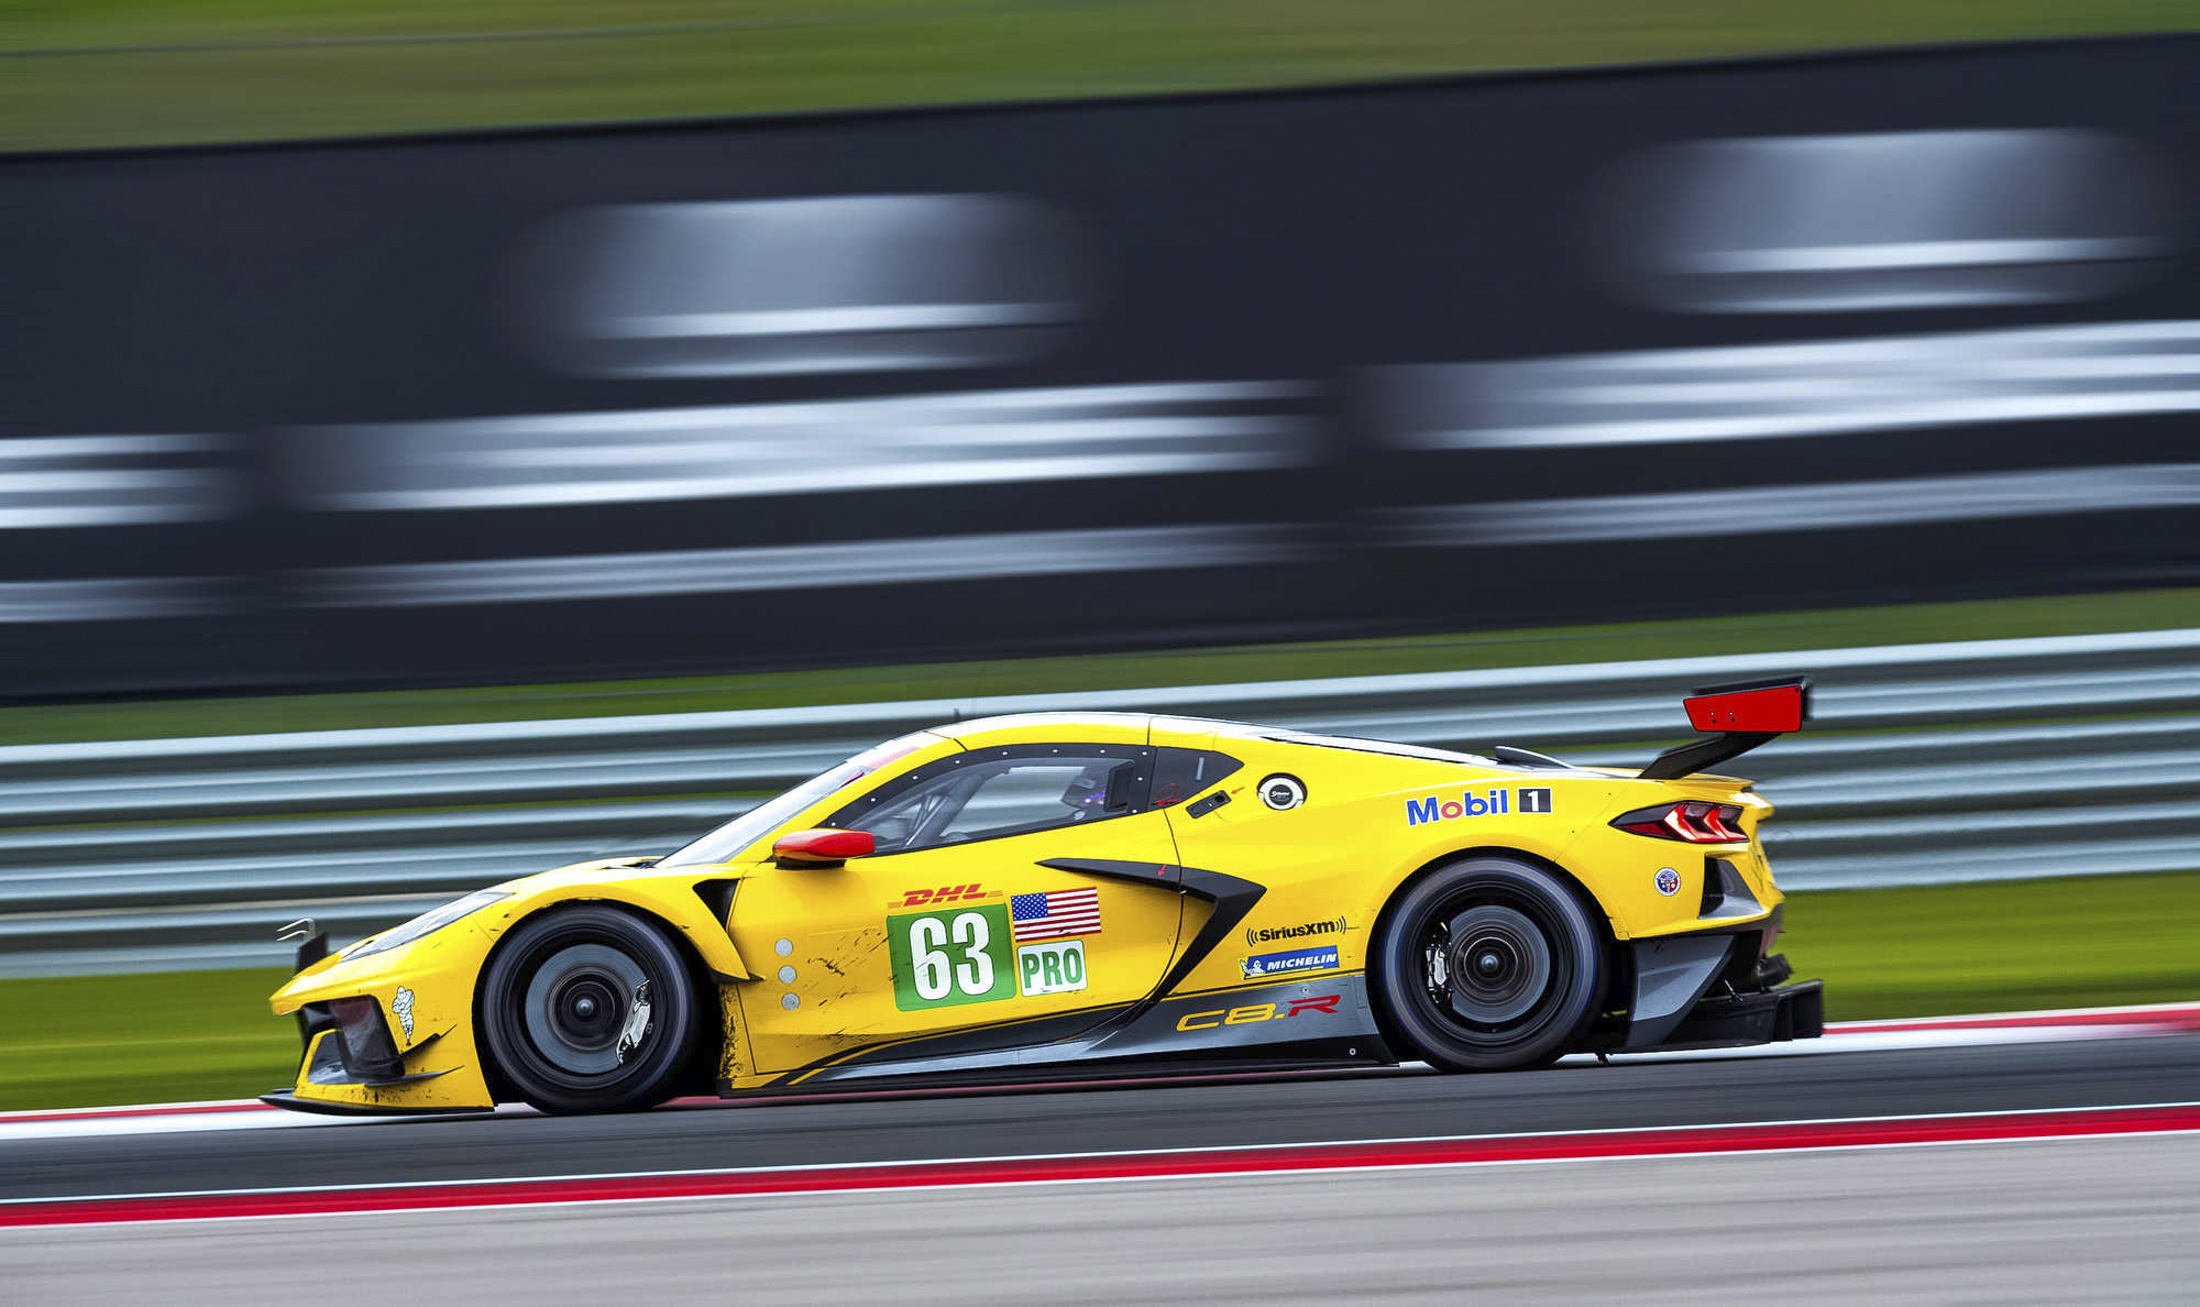 Jan Magnussen and Mike Rockenfeller, drivers of the #63 Mobil 1/SiriusXM Corvette C8.R, race to a sixth-place finish in the GTE Pro class Sunday, February 23, 2020 during the FIA World Endurance Championship's Six Hours of COTA at Circuit of The Americas in Austin, Texas. (Photo by Richard Prince for Corvette Racing)